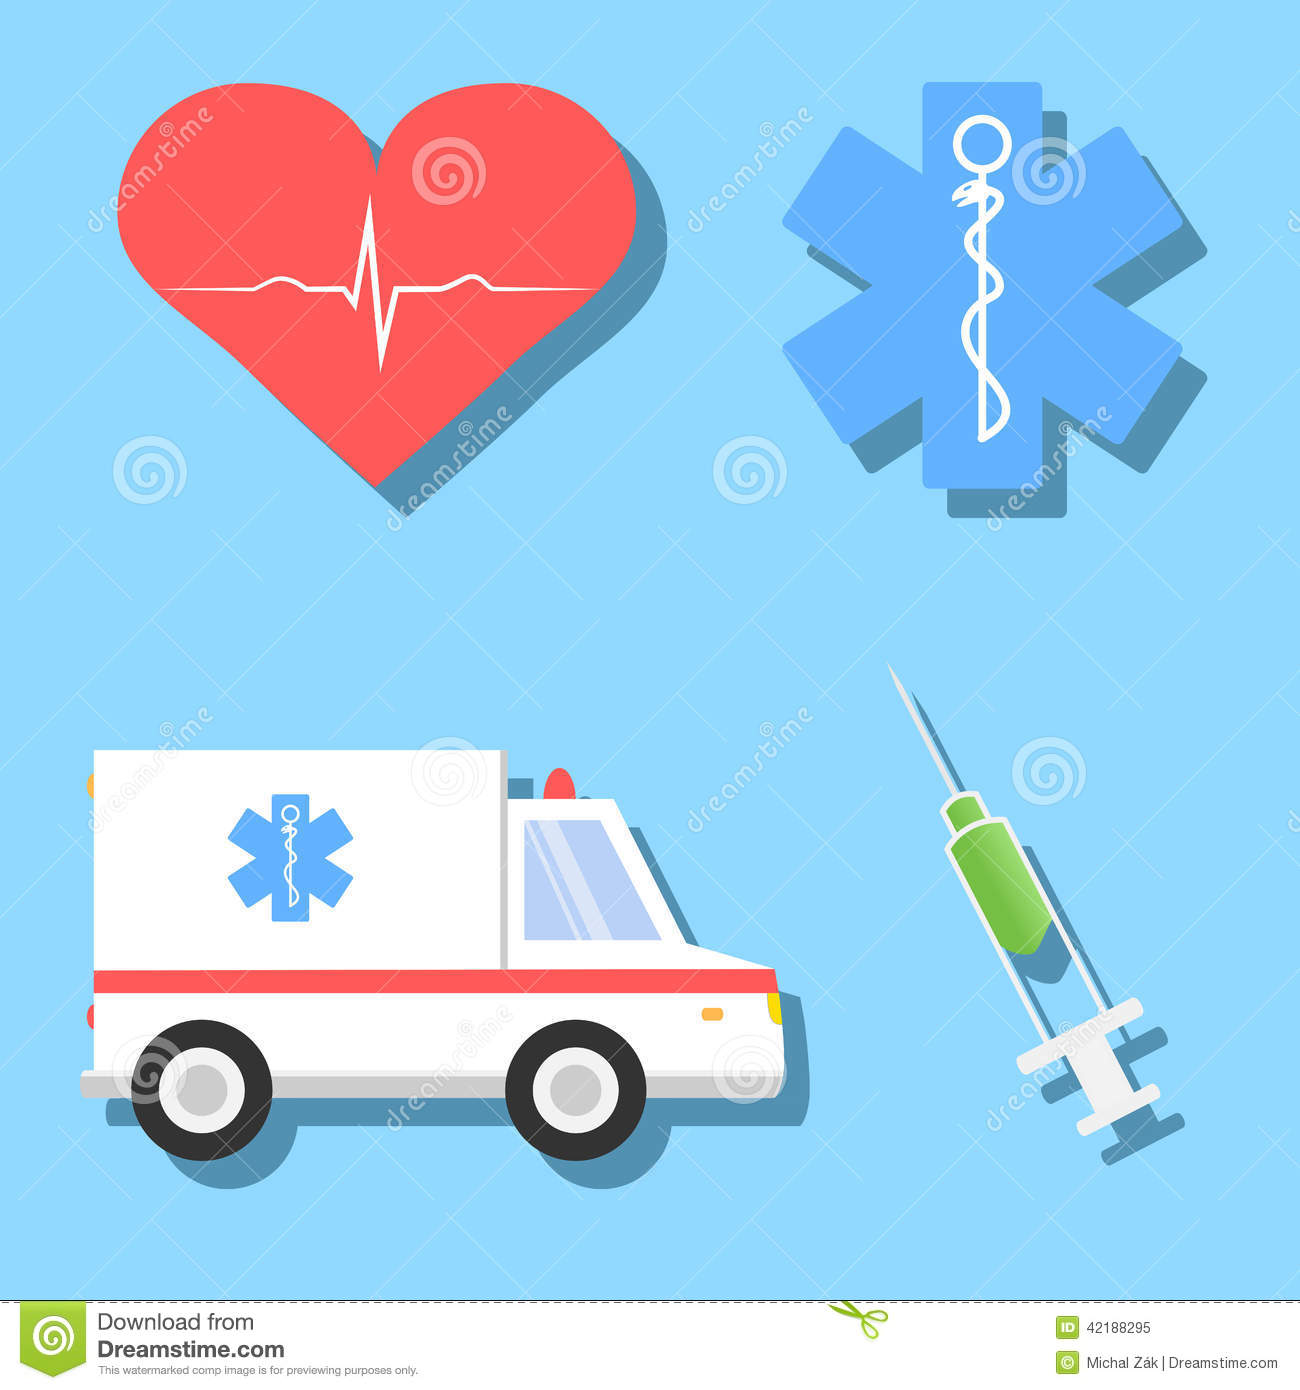 Cartoon Illustrations Of Medical Related Objects Stock Vector - Image ...